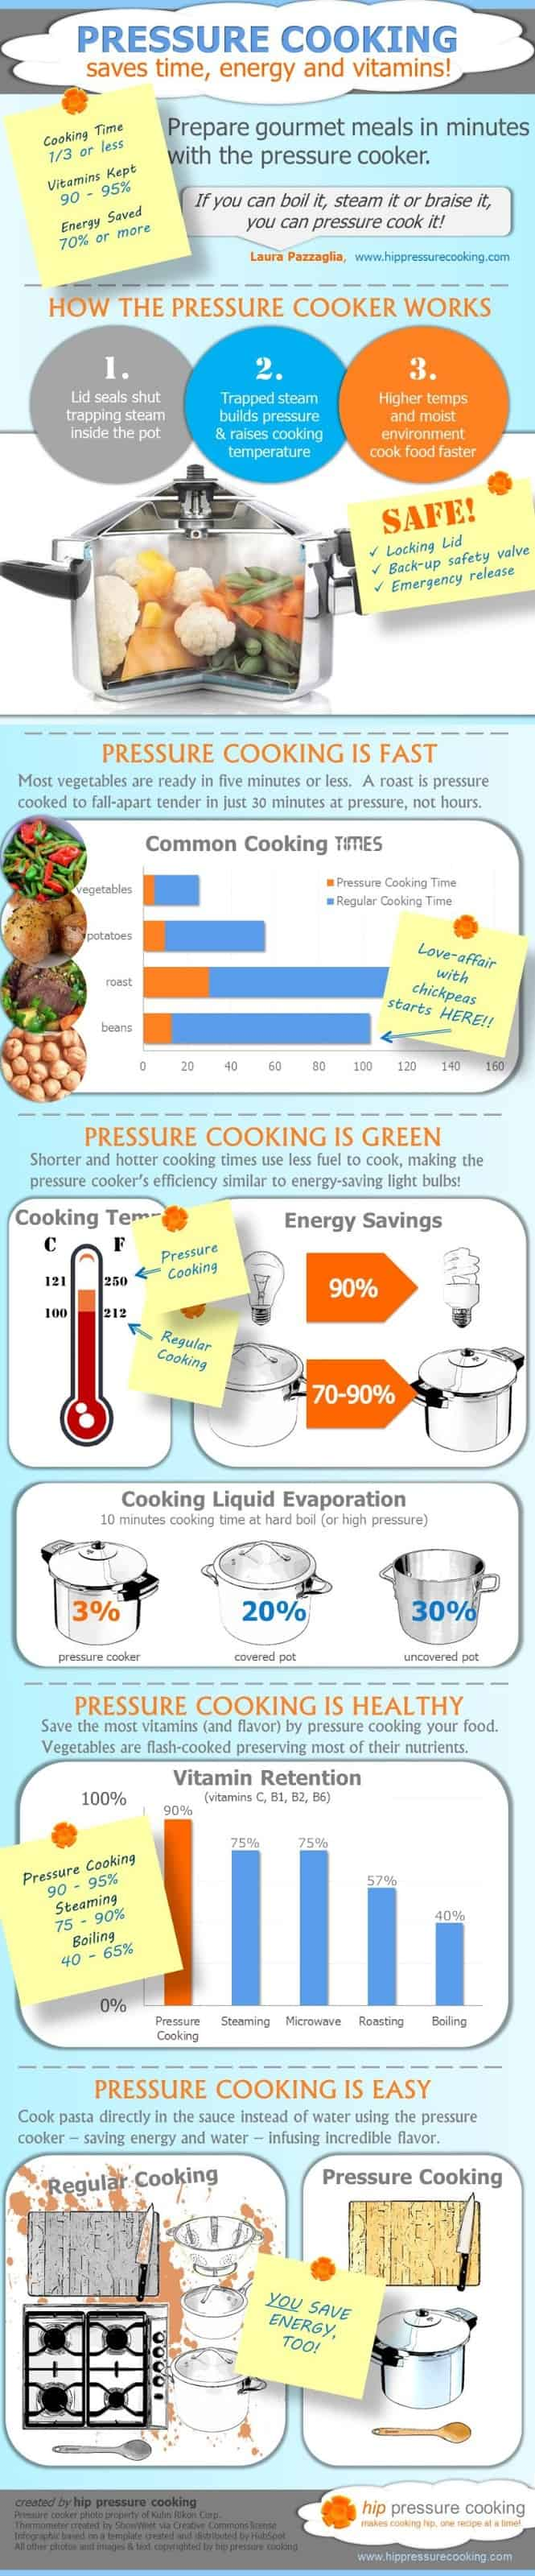 Why use a pressure cooker? With so many small kitchen appliances available, people often ask what the benefits are to using an Instant Pot multi-cooker. This infographic explains the benefits of cooking in a multi-cooker (Instant Pot) or electric pressure cooker.